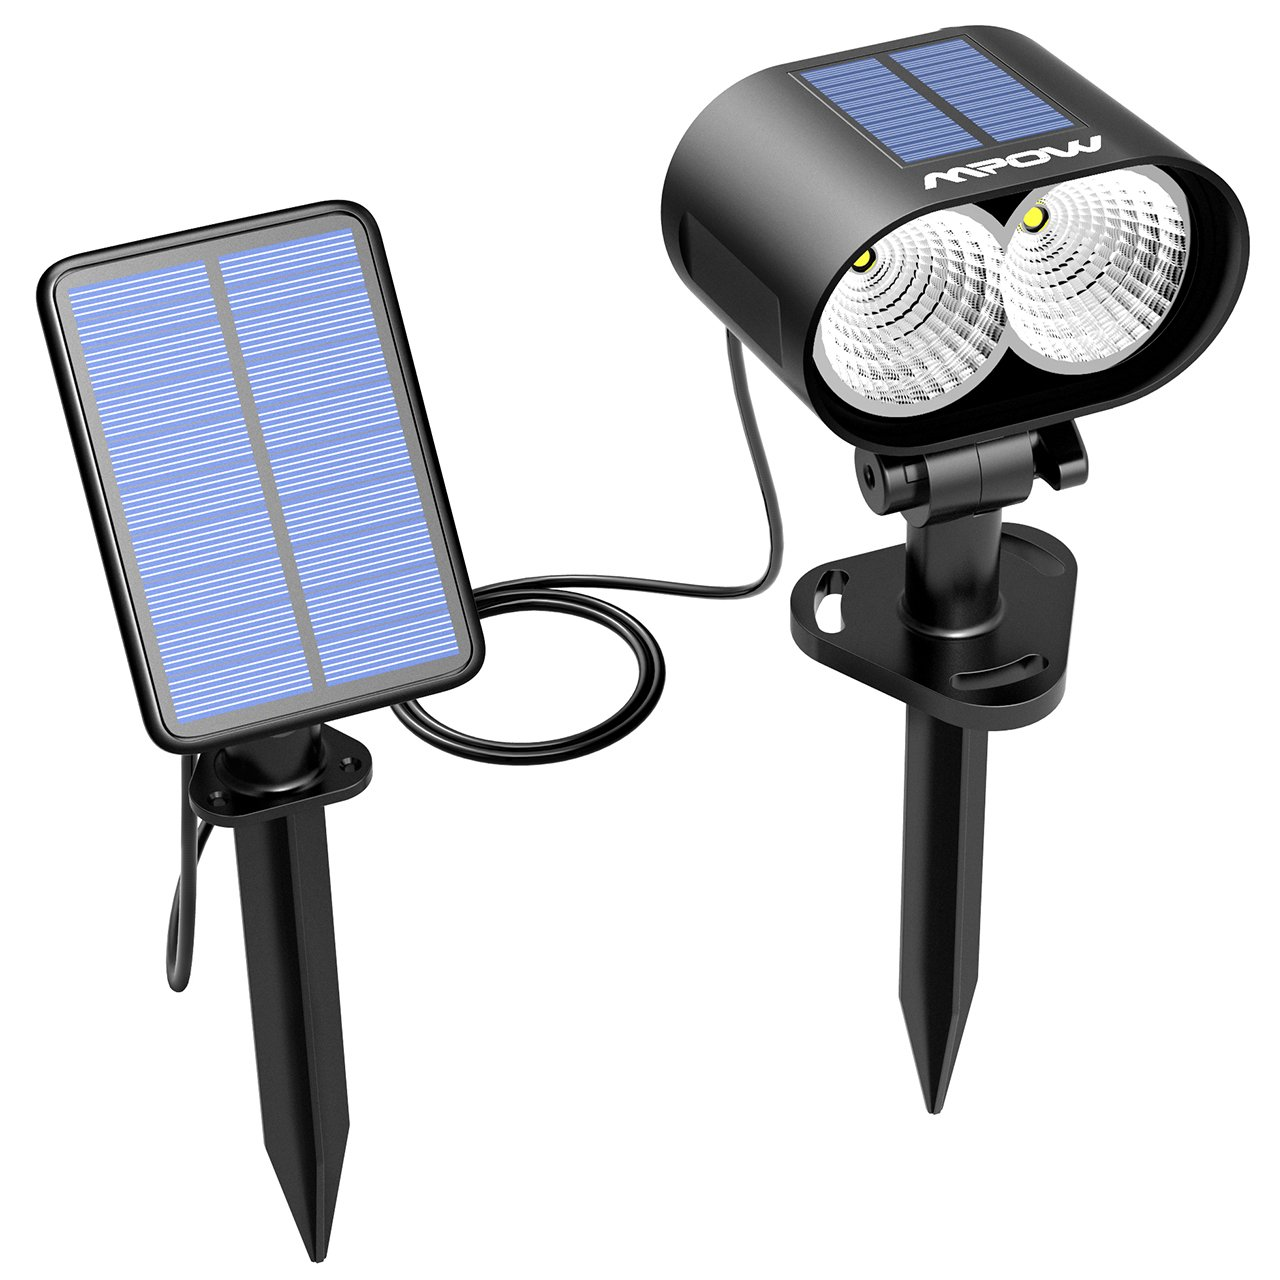 Mpow Solar Spotlight, 2-in-1 Outdoor Patio Light Security Spotlight Wall Light with 2 Solar Panel for Landscape, Lawn, Garden, Deck,Yard, Pathway (1 Pack)